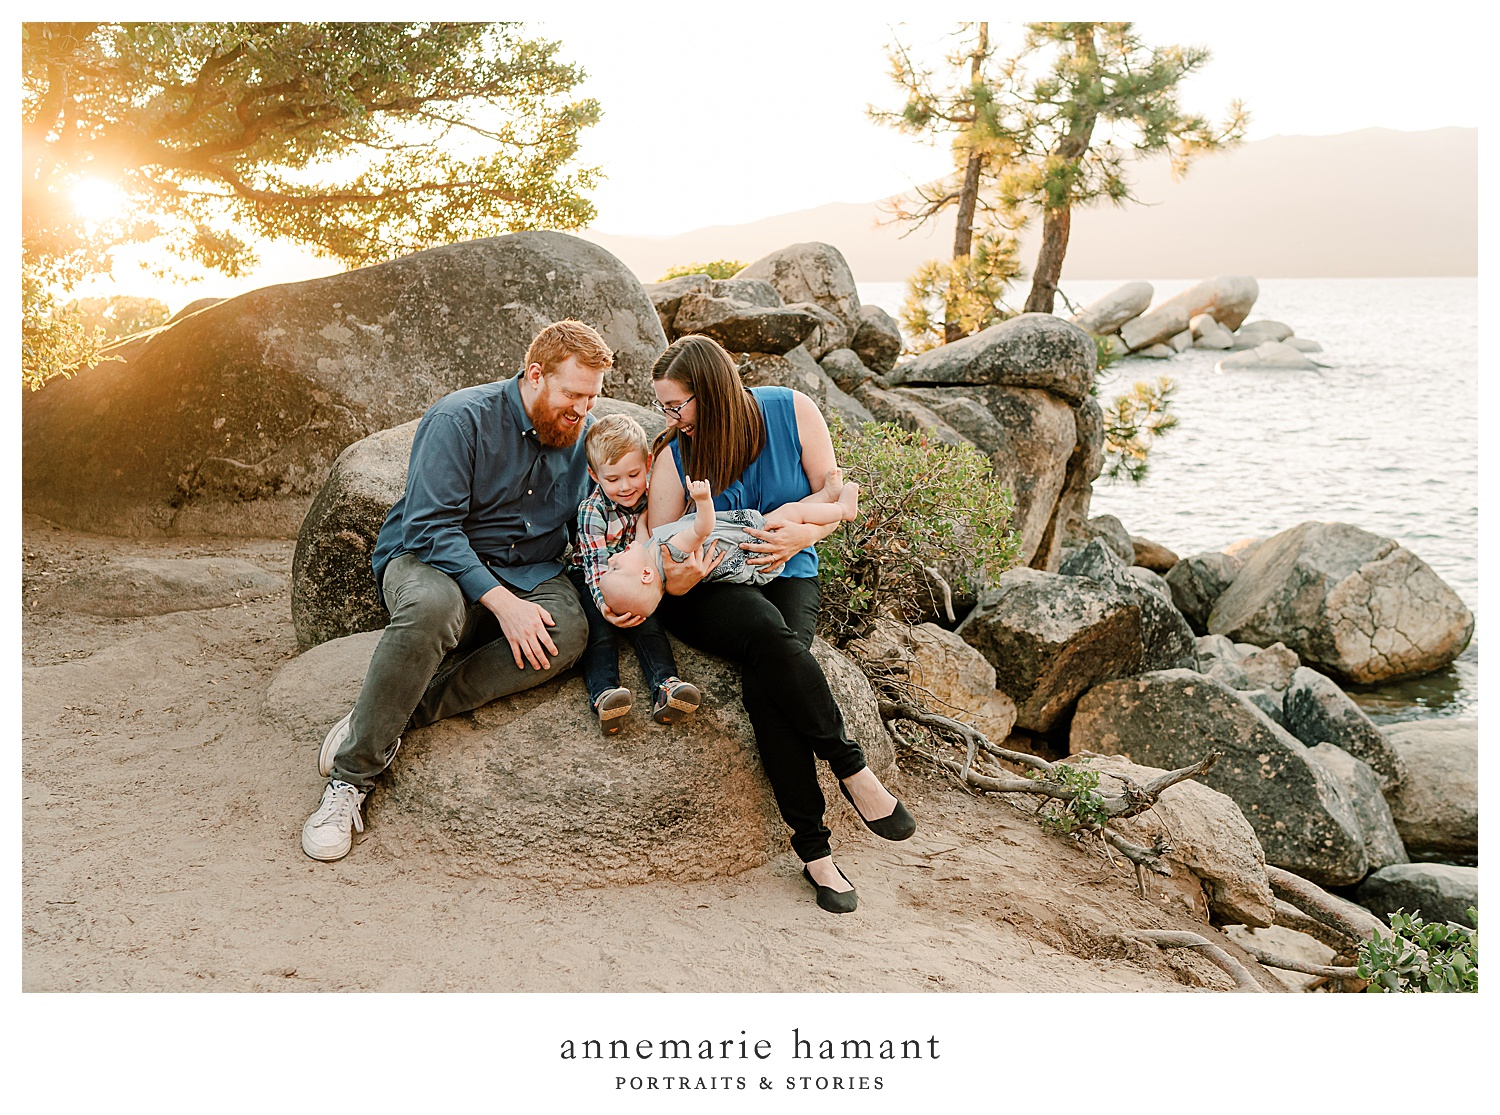 Sunset family photography at Sand Harbor, Lake Tahoe. AnneMarie Hamant uses sunset light and candid connections to photograph families on vacation in Lake Tahoe.